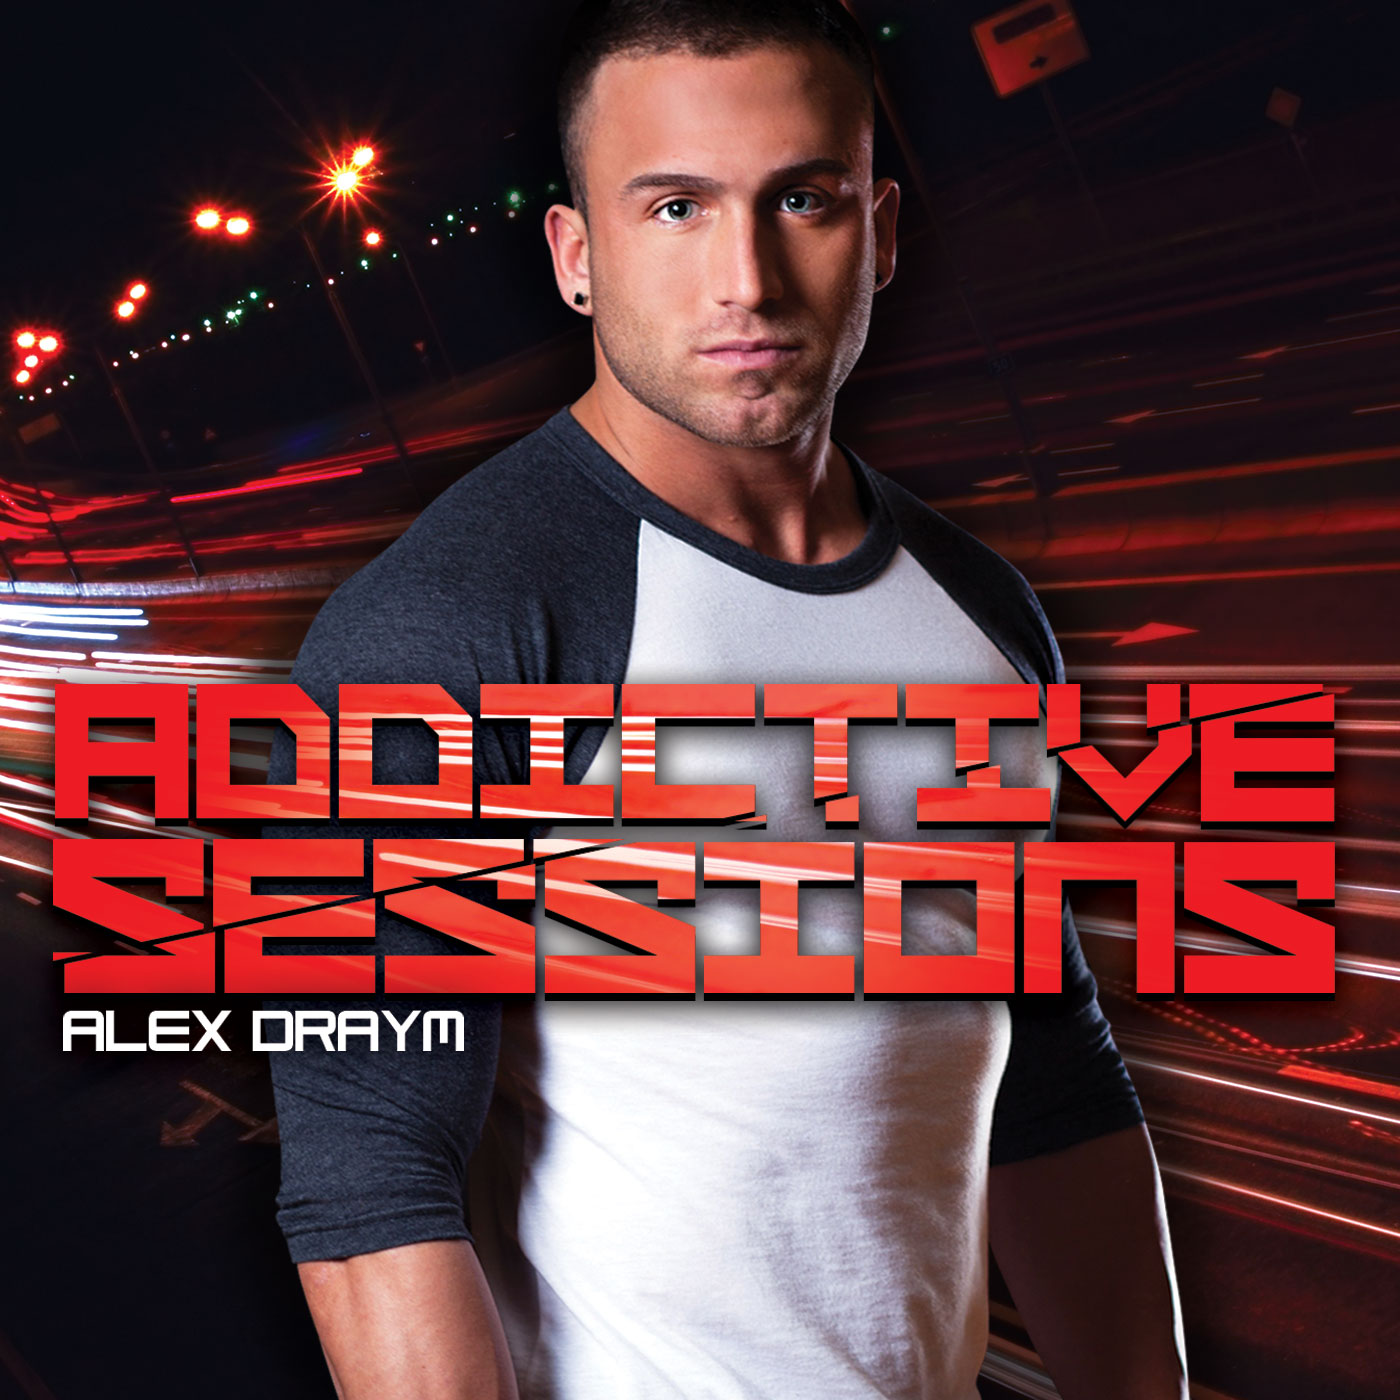 Alex Draym - Addictive Sessions